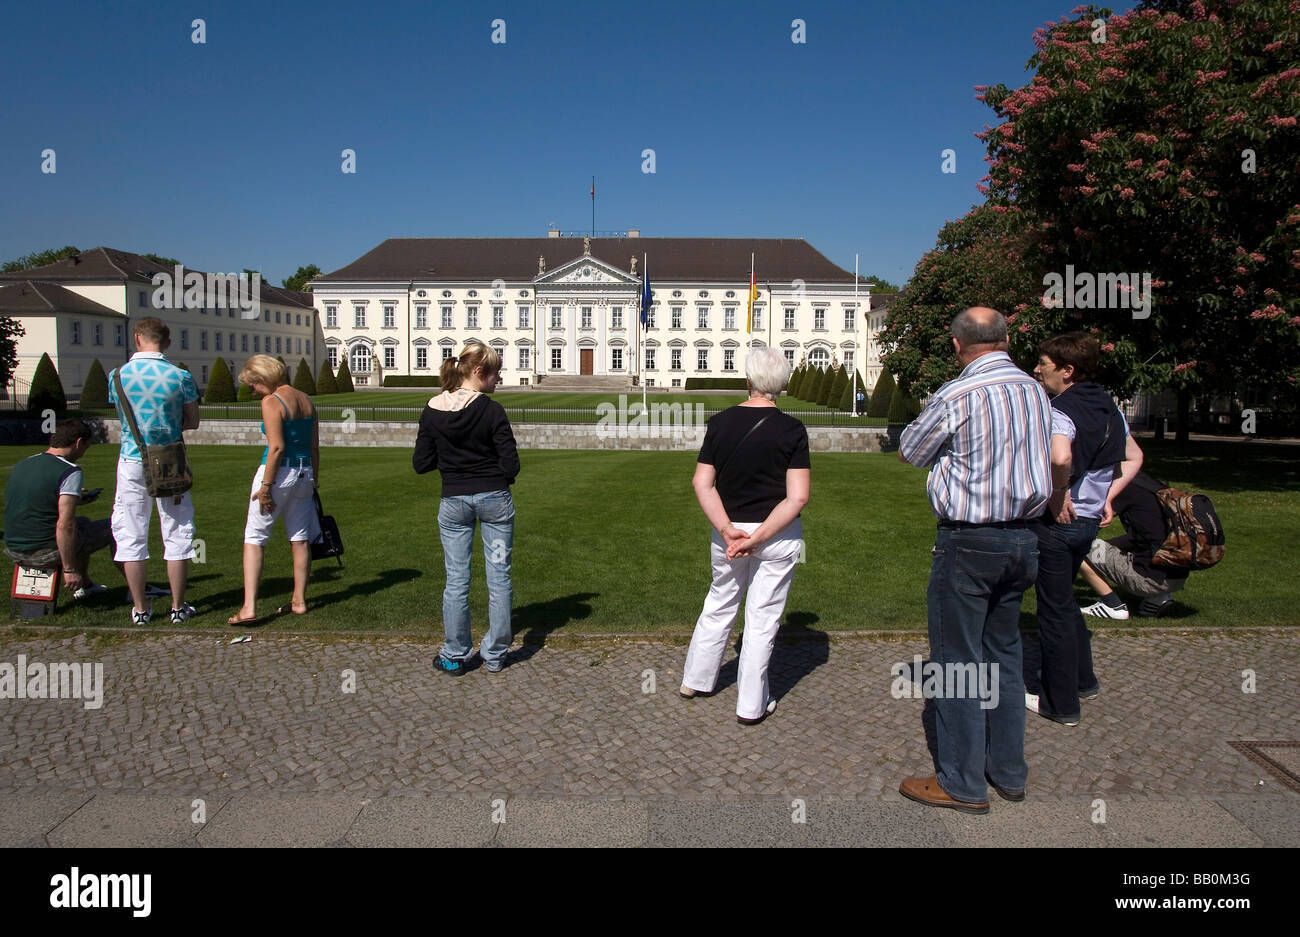 Schloss Palace Bellevue residence of the German Federal President - Stock Image